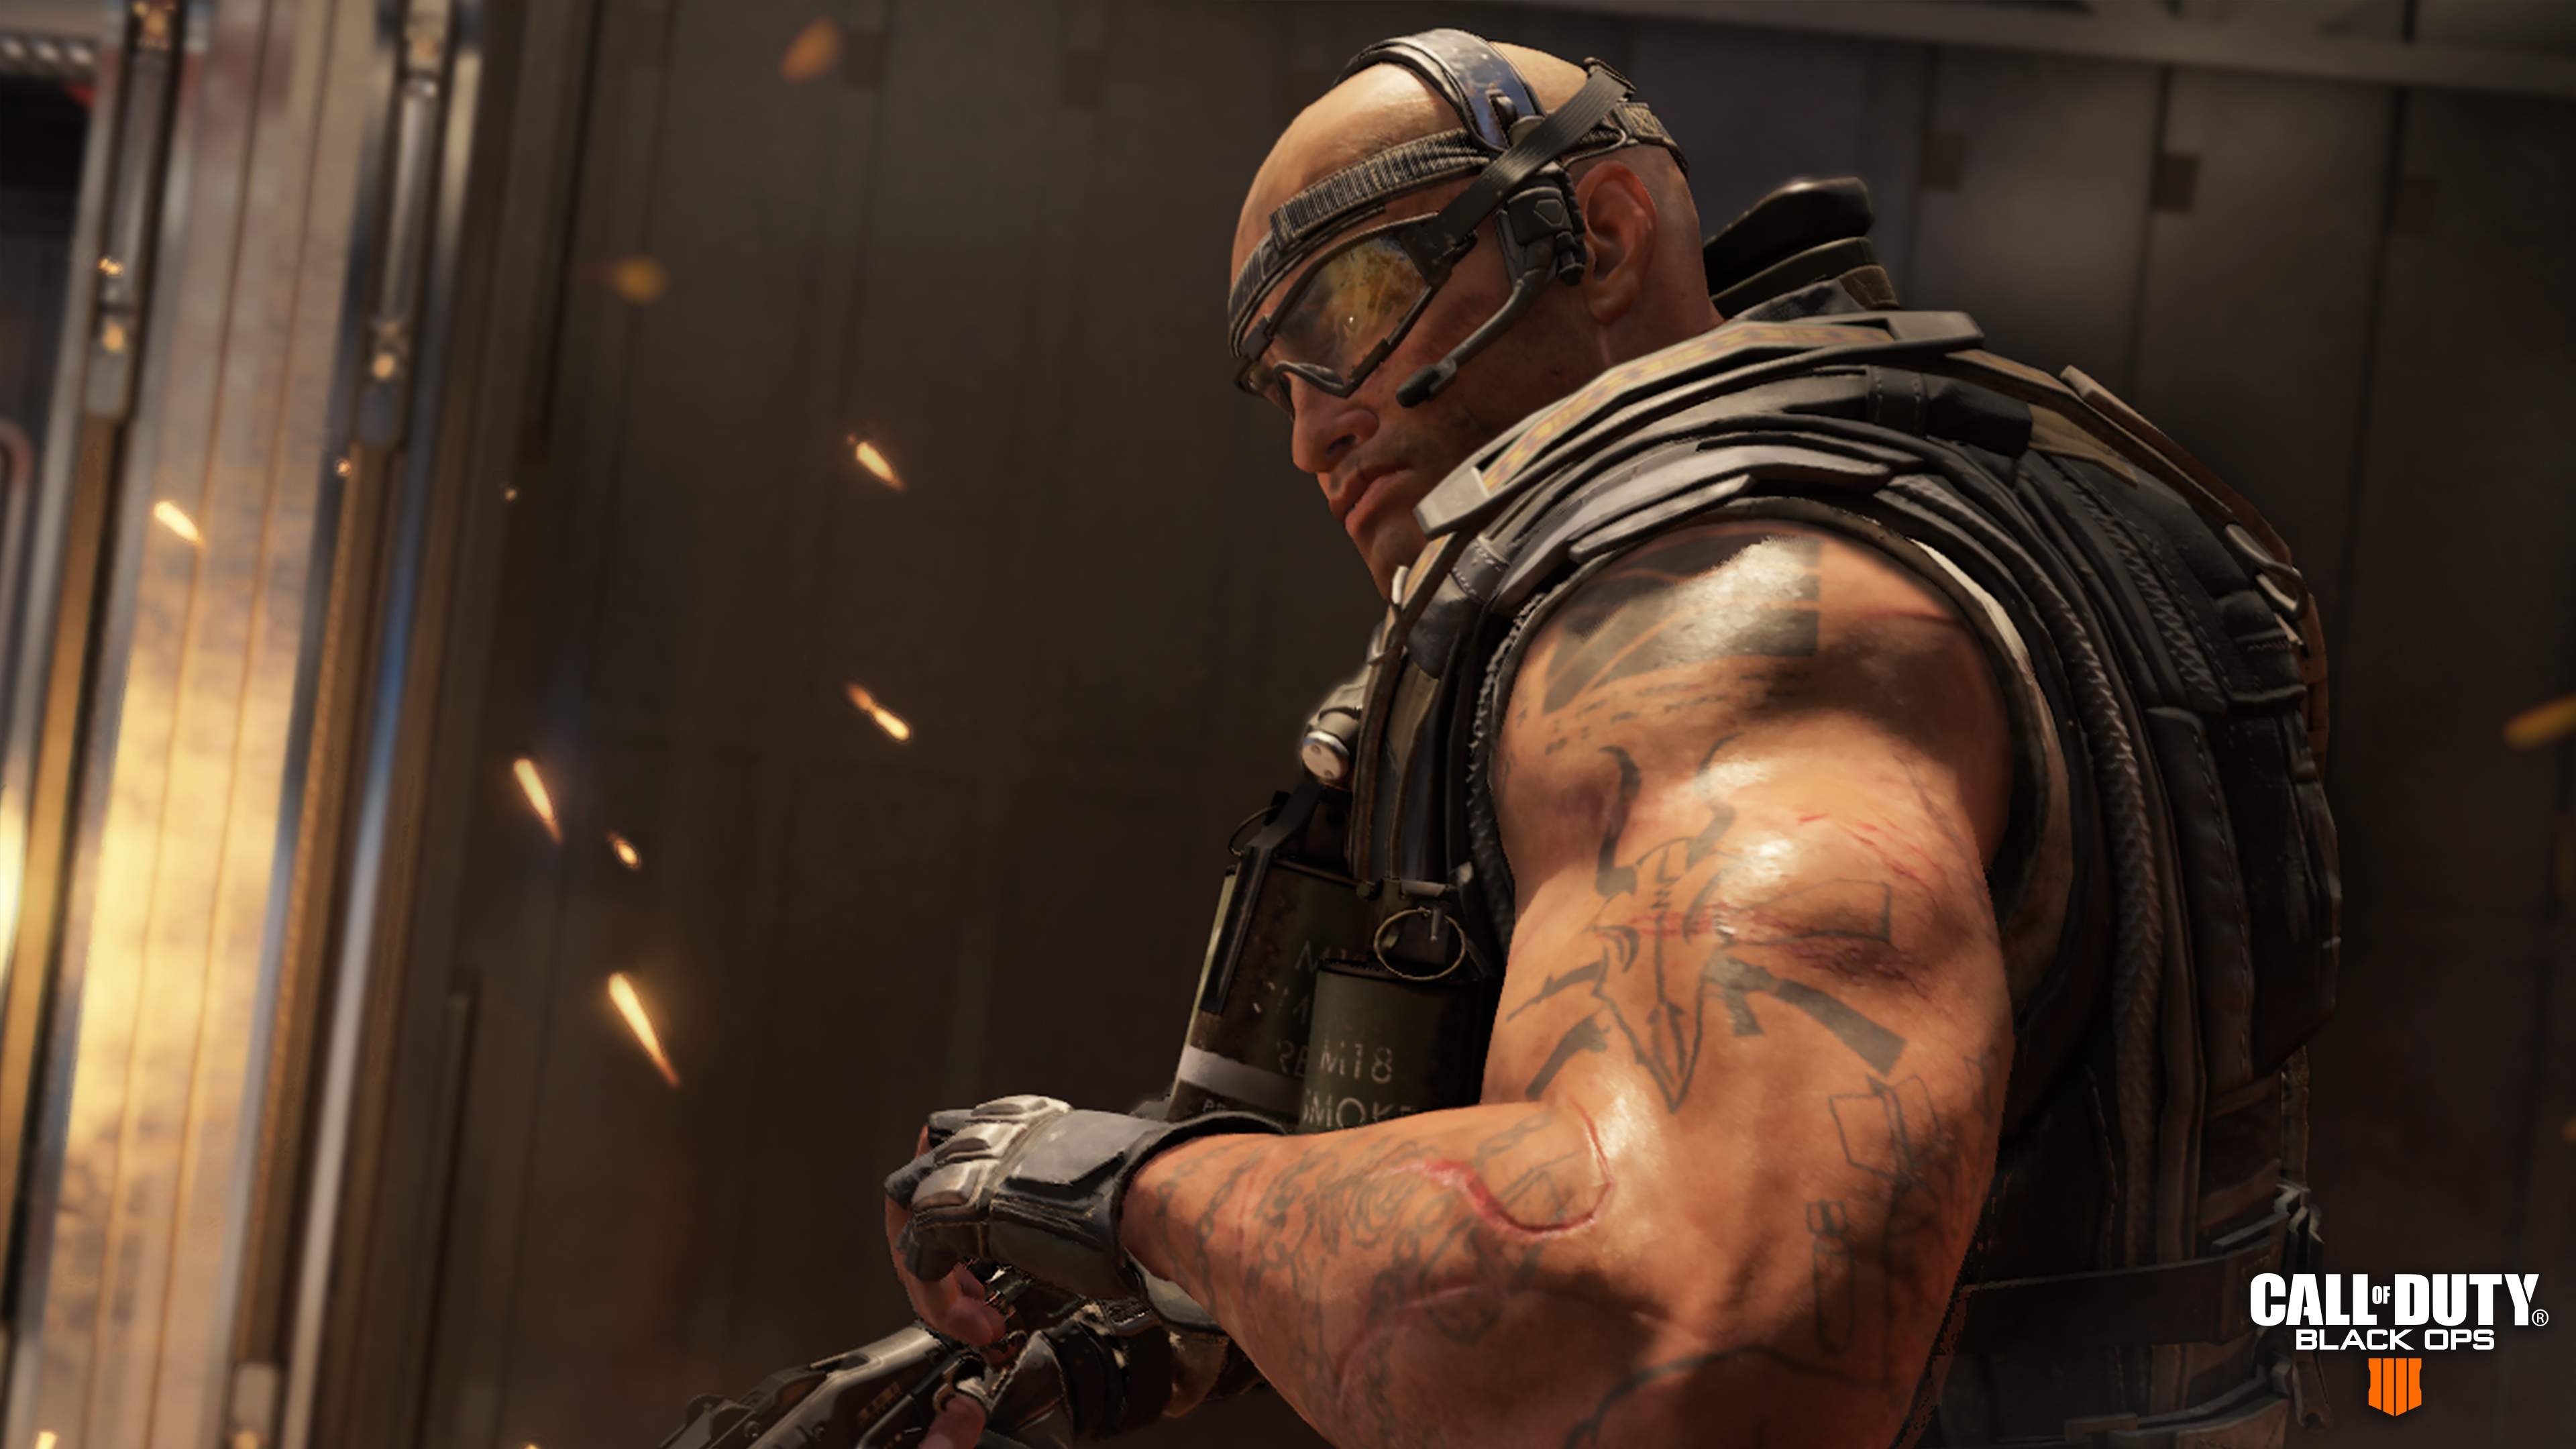 Call of Duty: Black Ops 4 hands-on — Multiplayer first impressions and videos